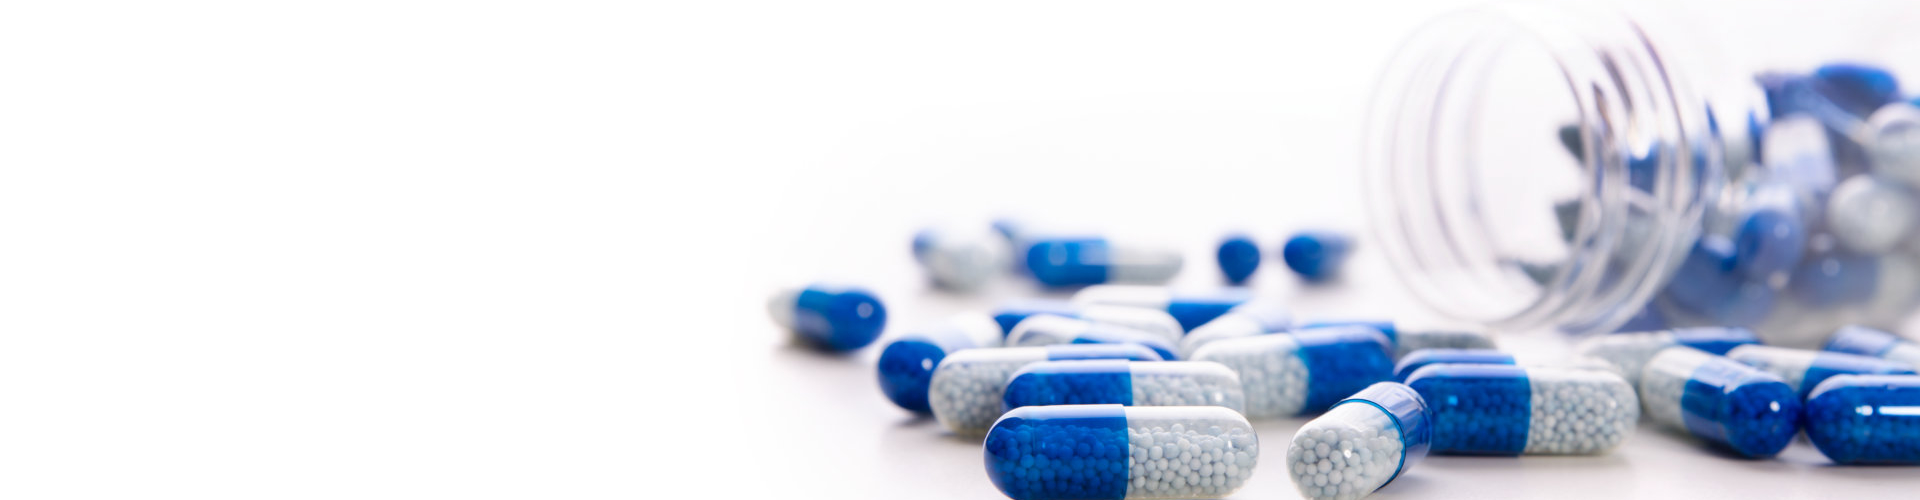 Pile of scattered capsules on a white background.